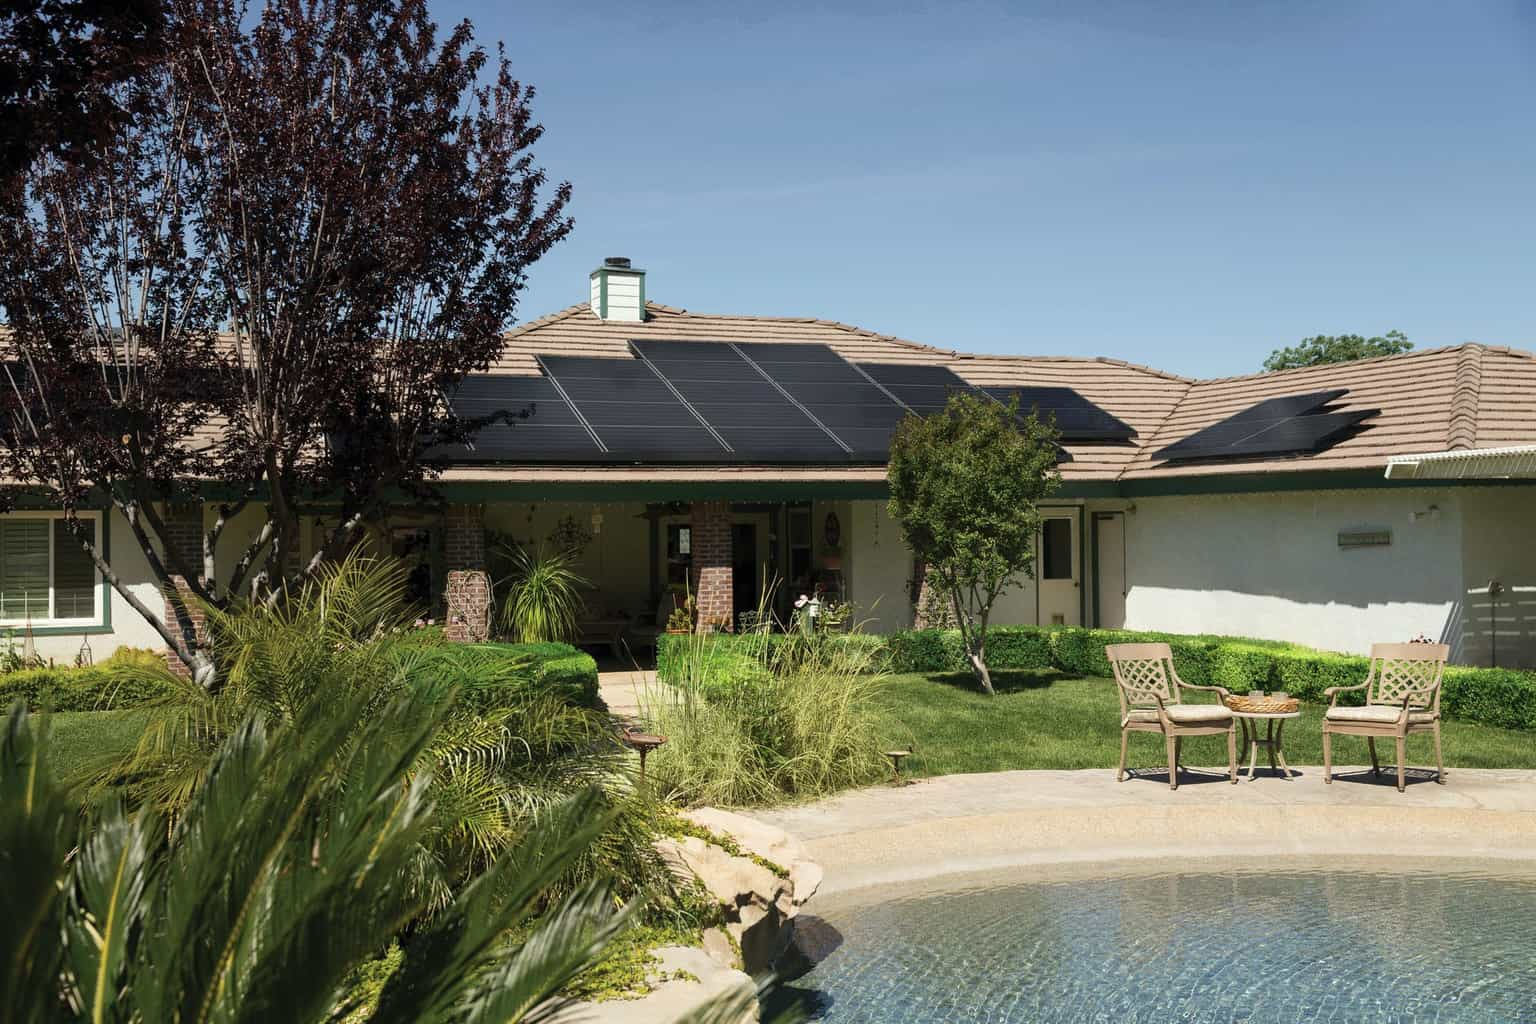 Top 5 Modern Home Additions that Save the Earth and Money